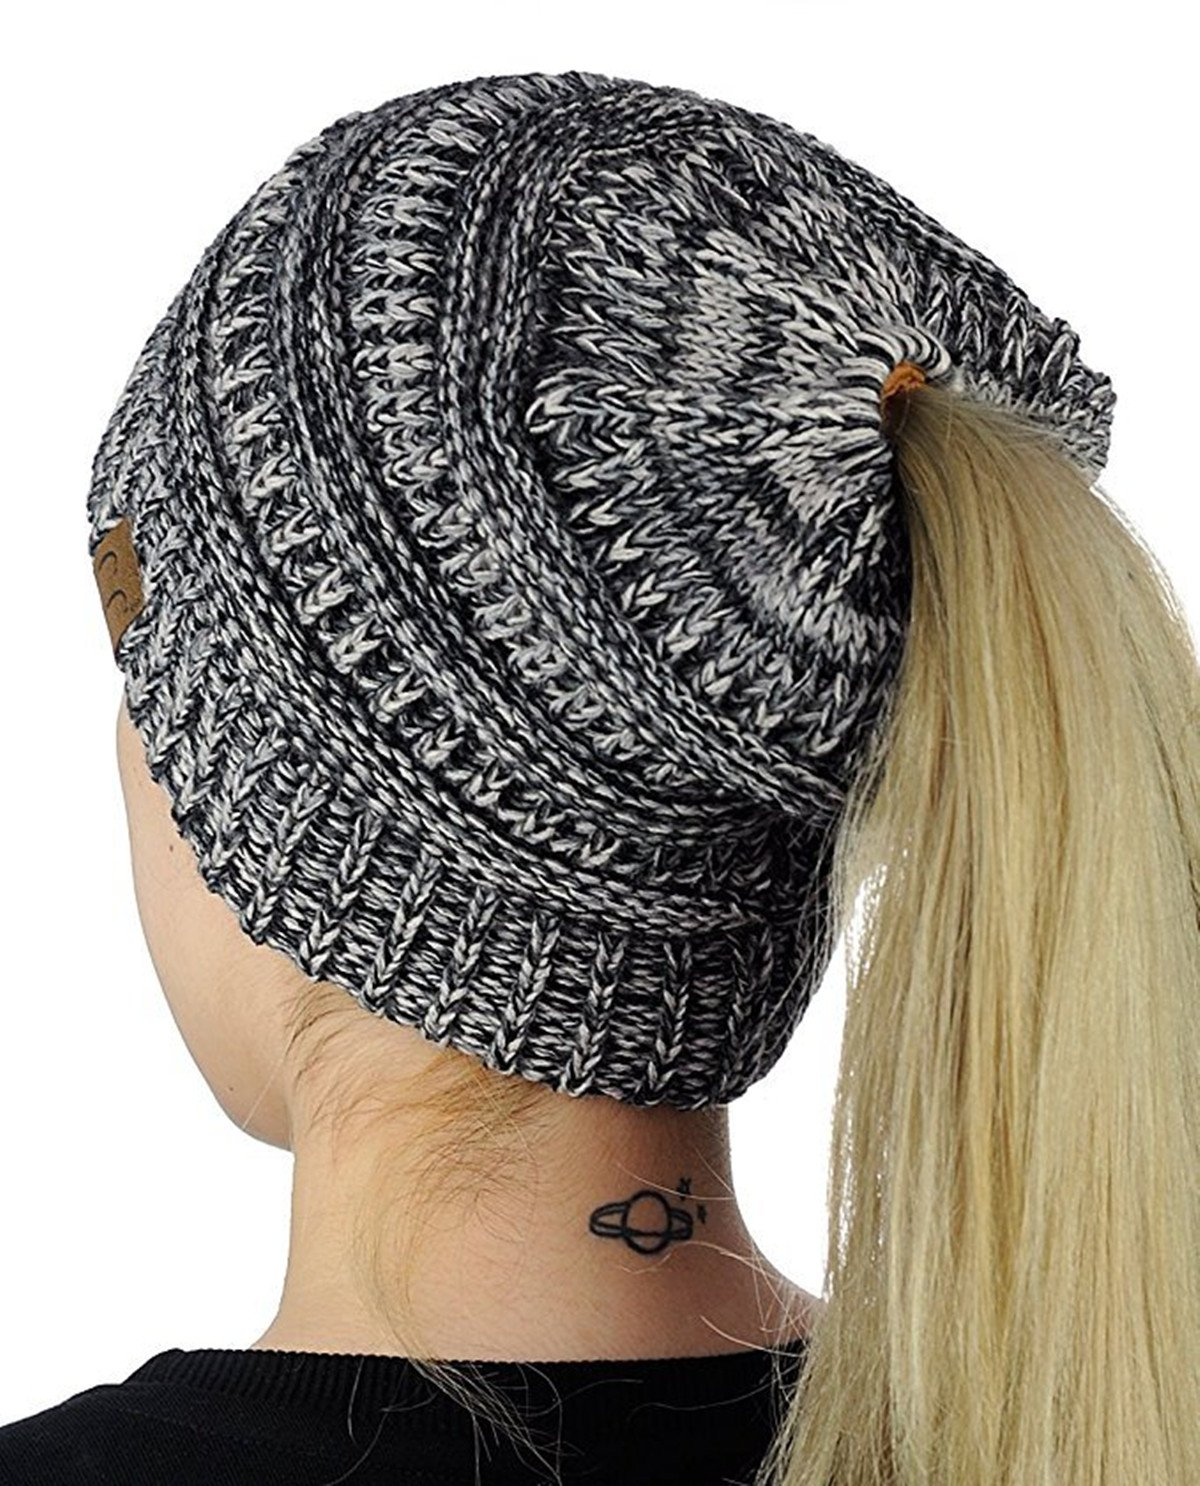 Womens Beanie Tail Ponytail Winter Warm Stretch Cable Messy High Bun Knit Hat FIST BUMP Dept